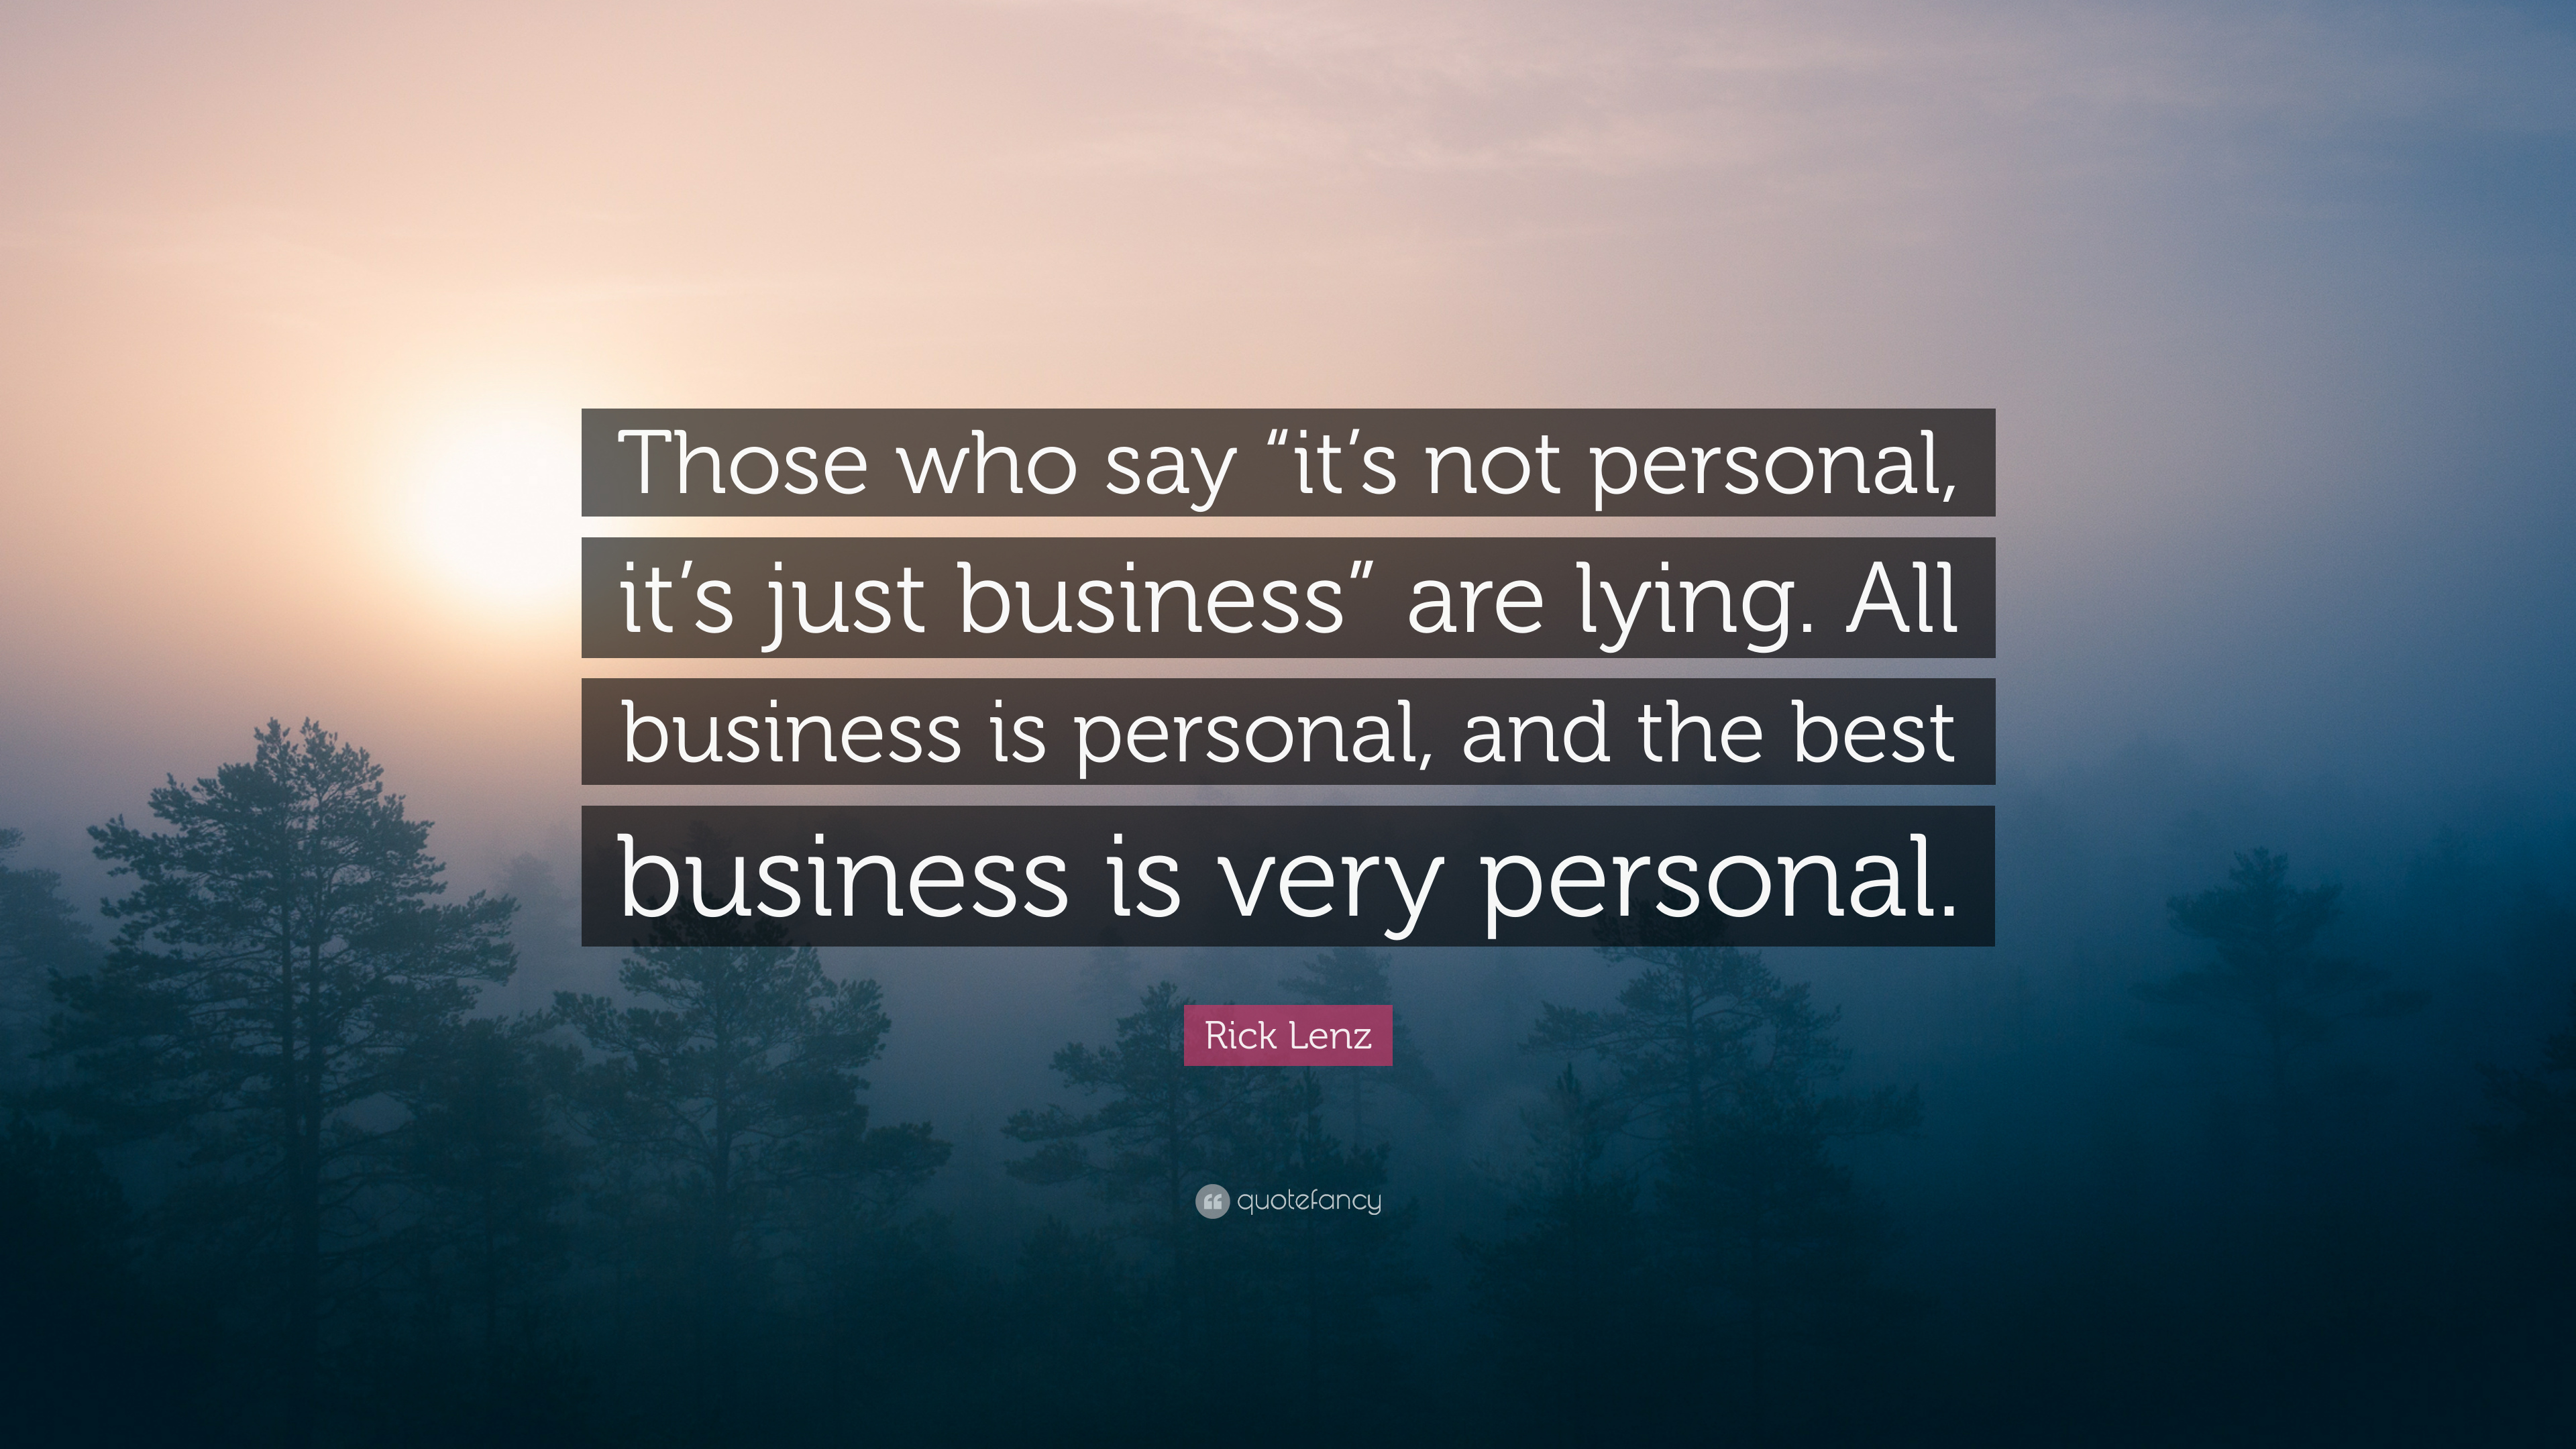 It's not personal, it's just business.